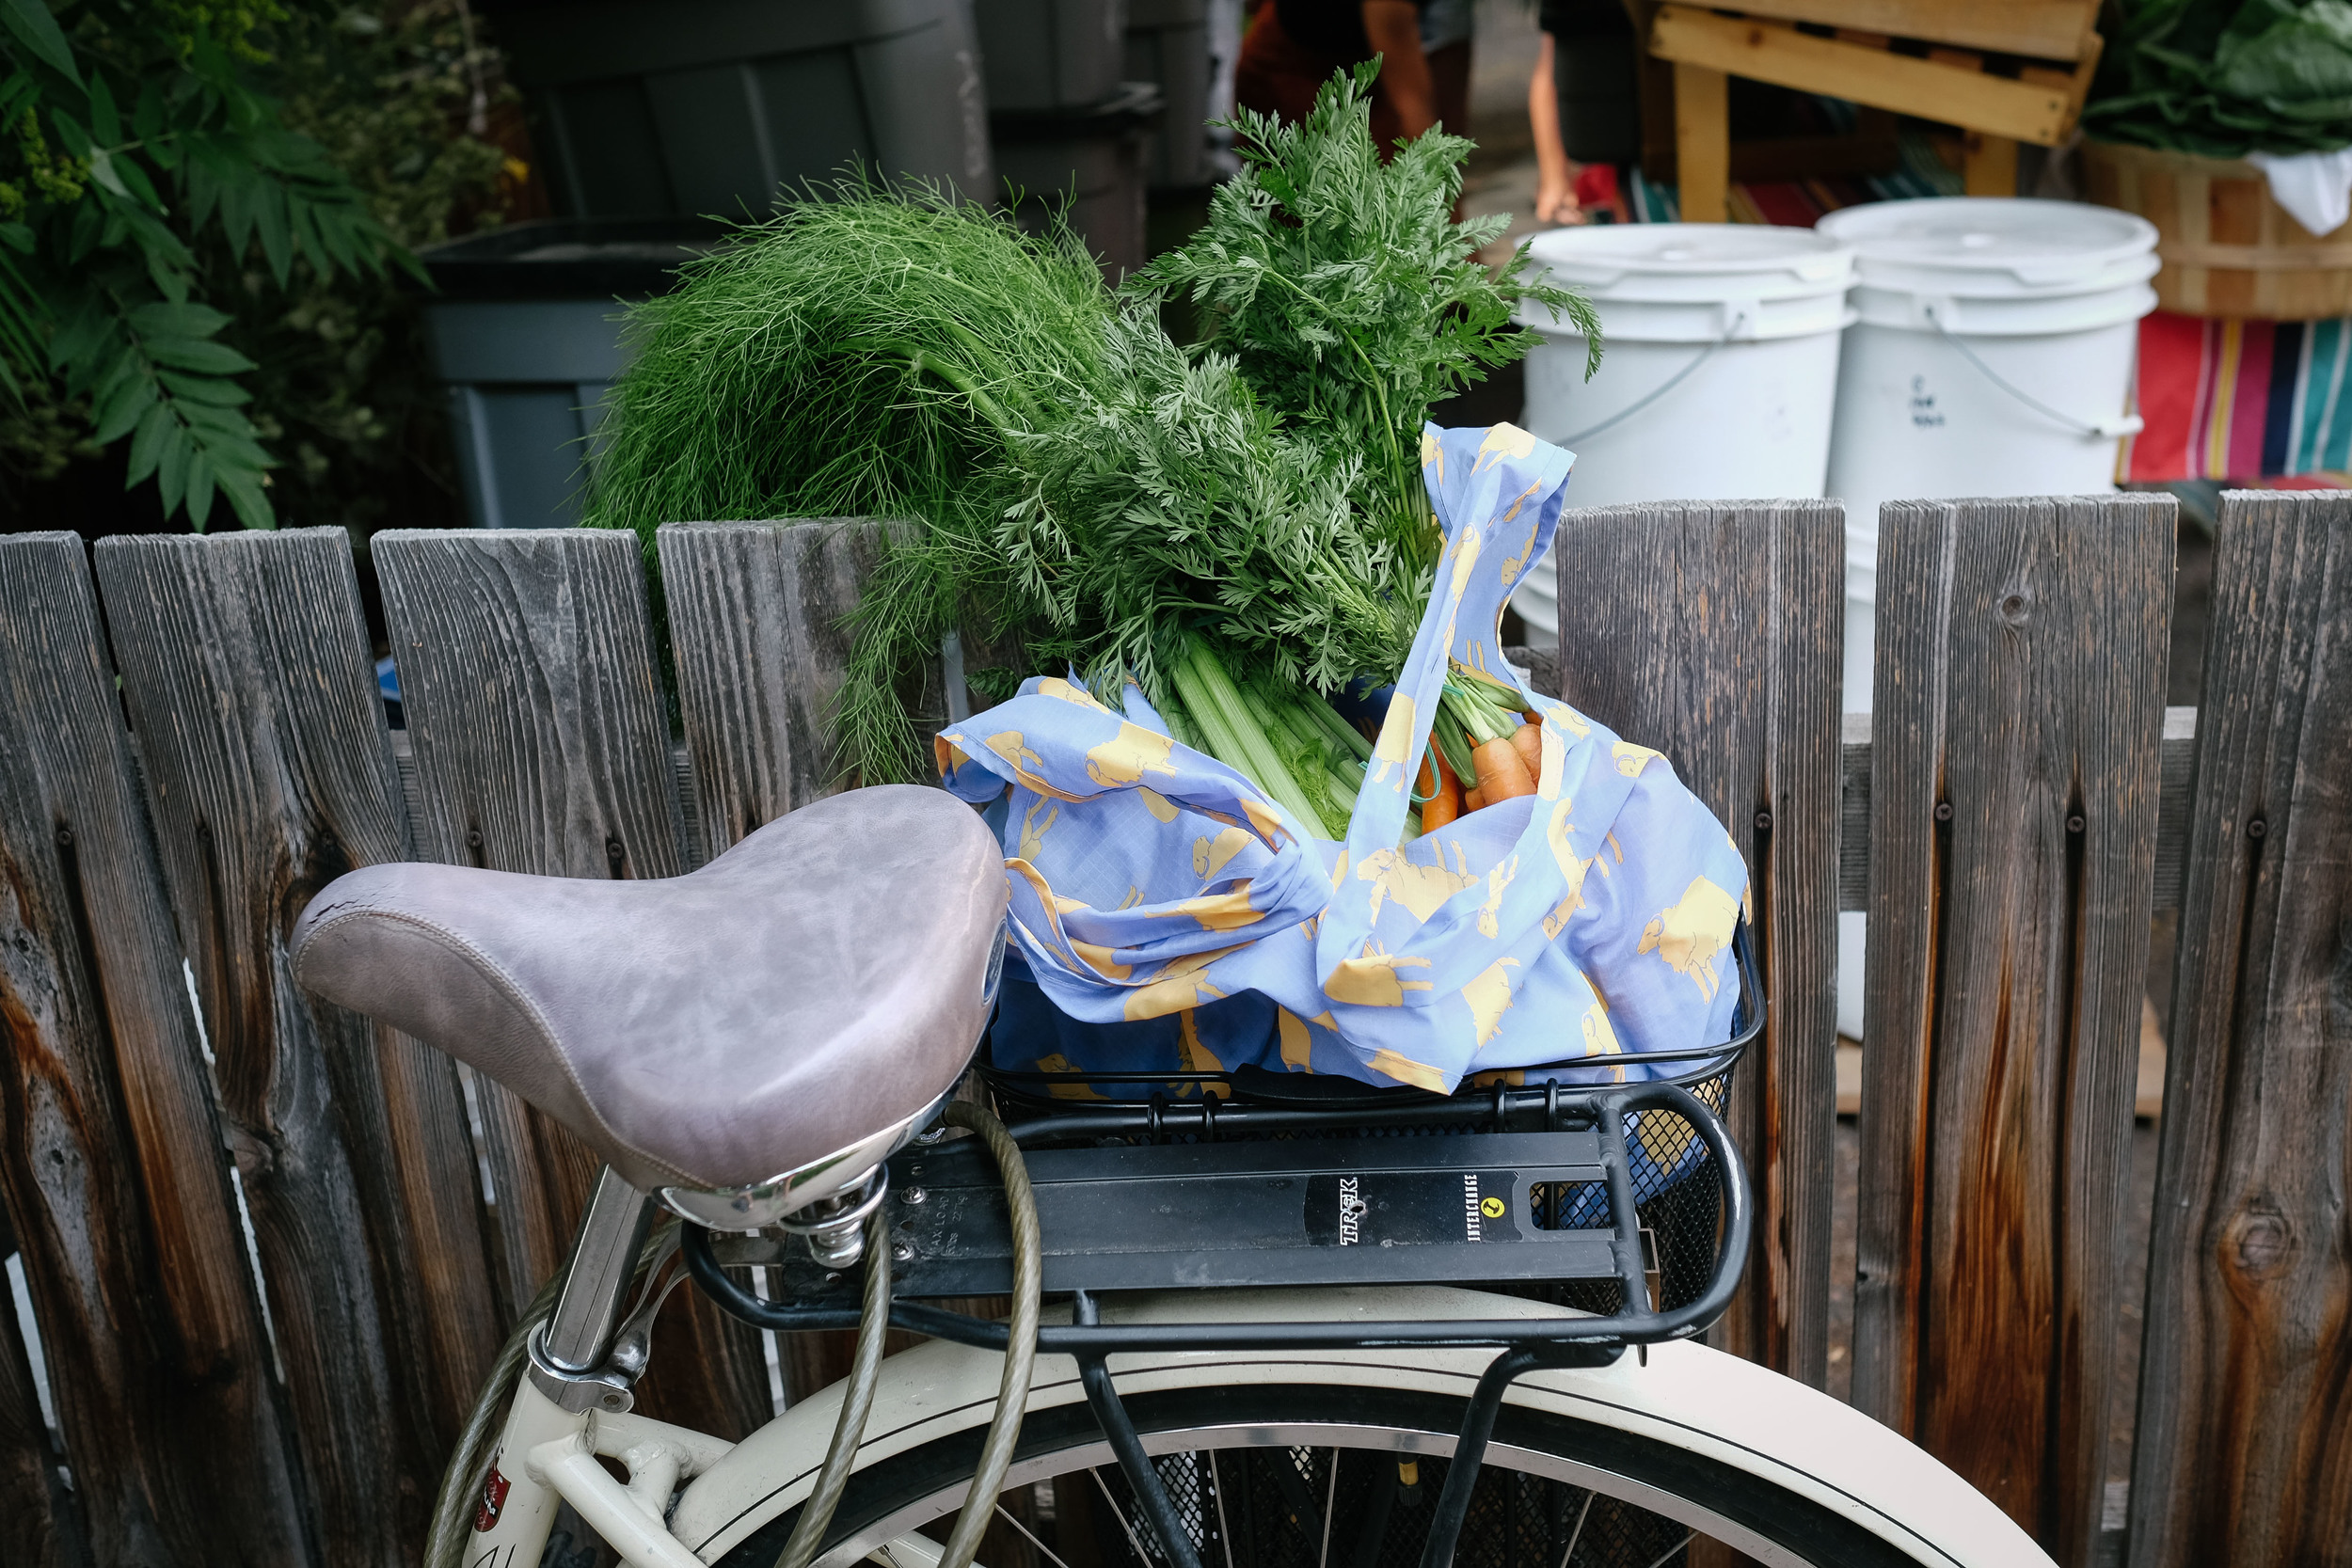 A bicycle with a bag of produce.